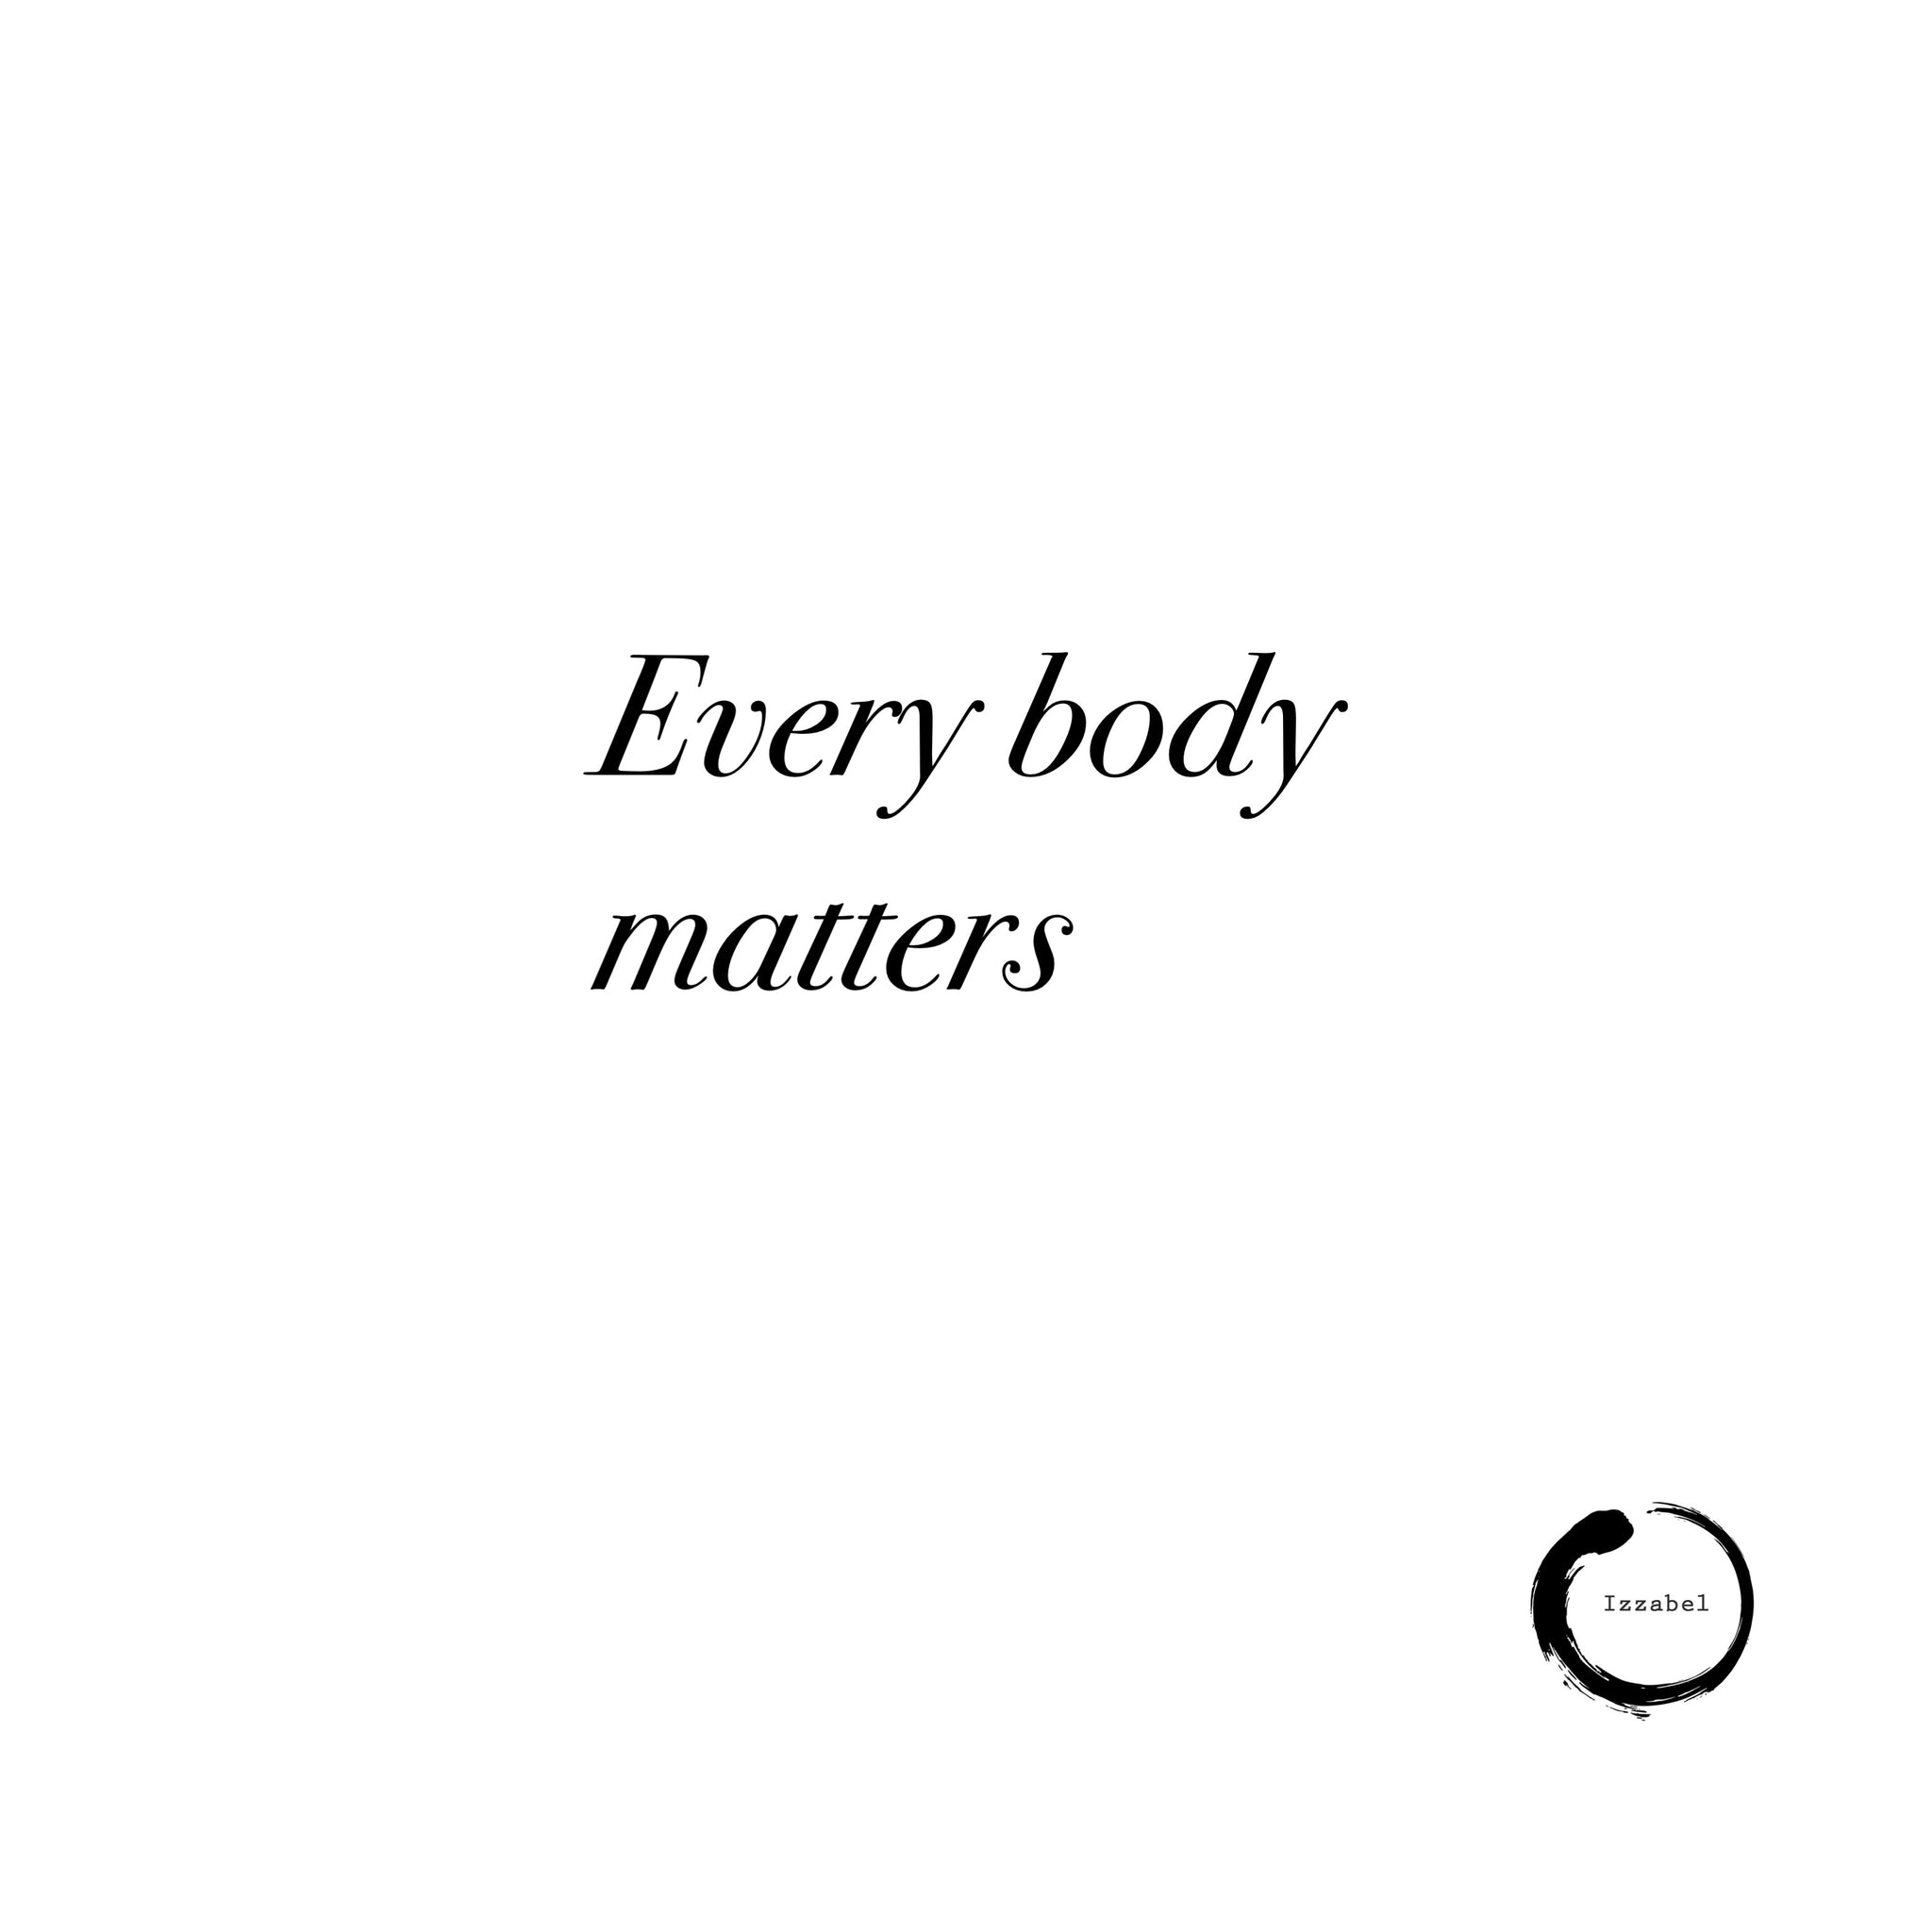 Every body matters ❤️